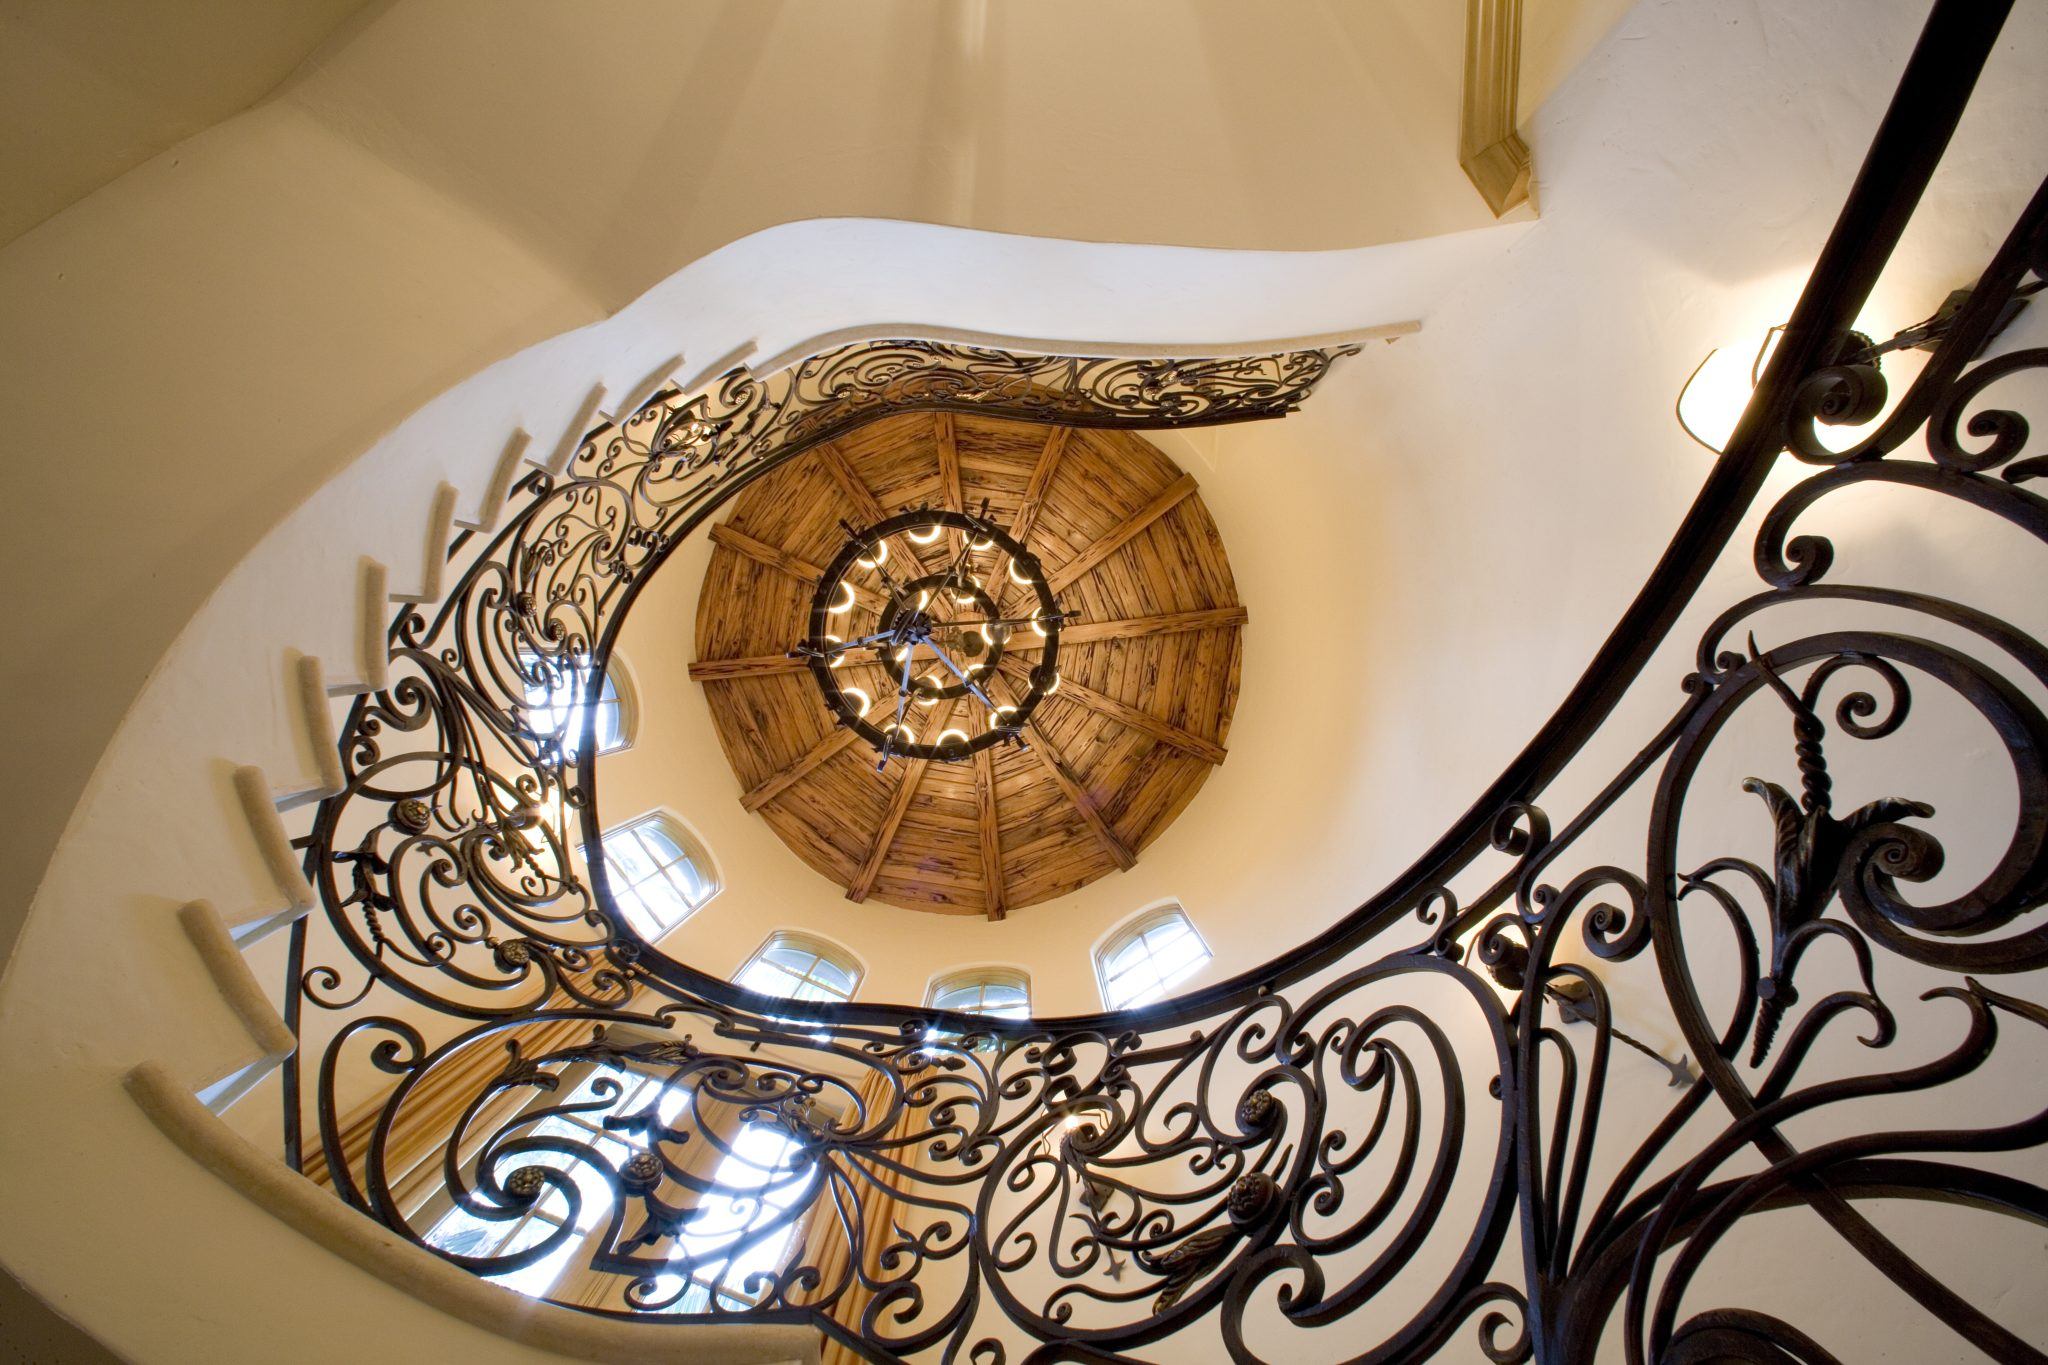 French Provincial Res- Stair Hall. Wrought iron railings, pecky cypress ceiling by Gonzalez-Abreu   Alas Architects (GAA)